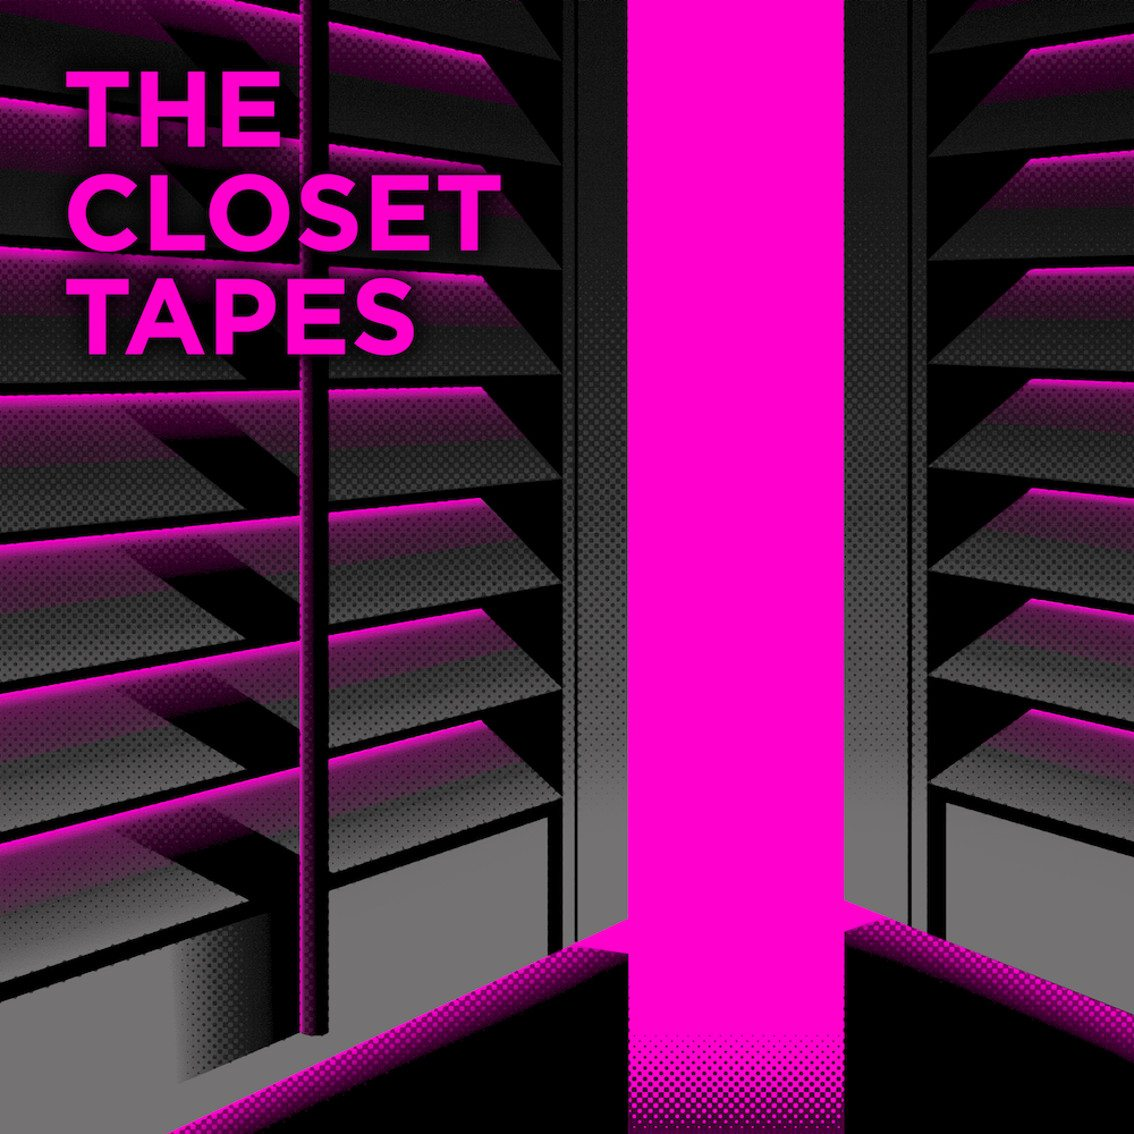 Queer artists united on'The Closet Tapes' including Gaytron